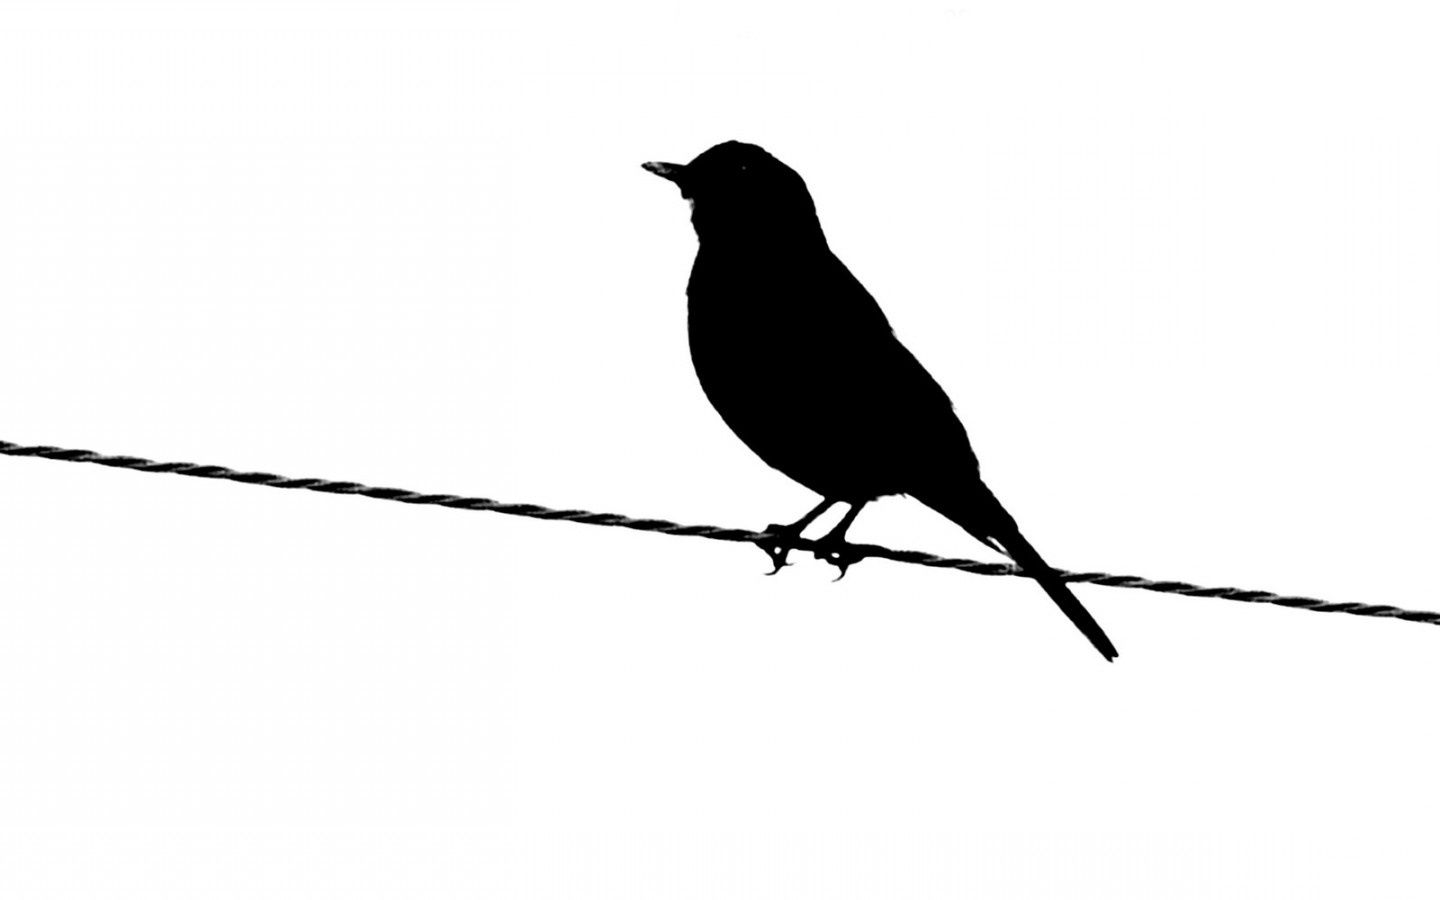 blackbird silhouette at getdrawings com free for personal use rh getdrawings com  blackbird clipart